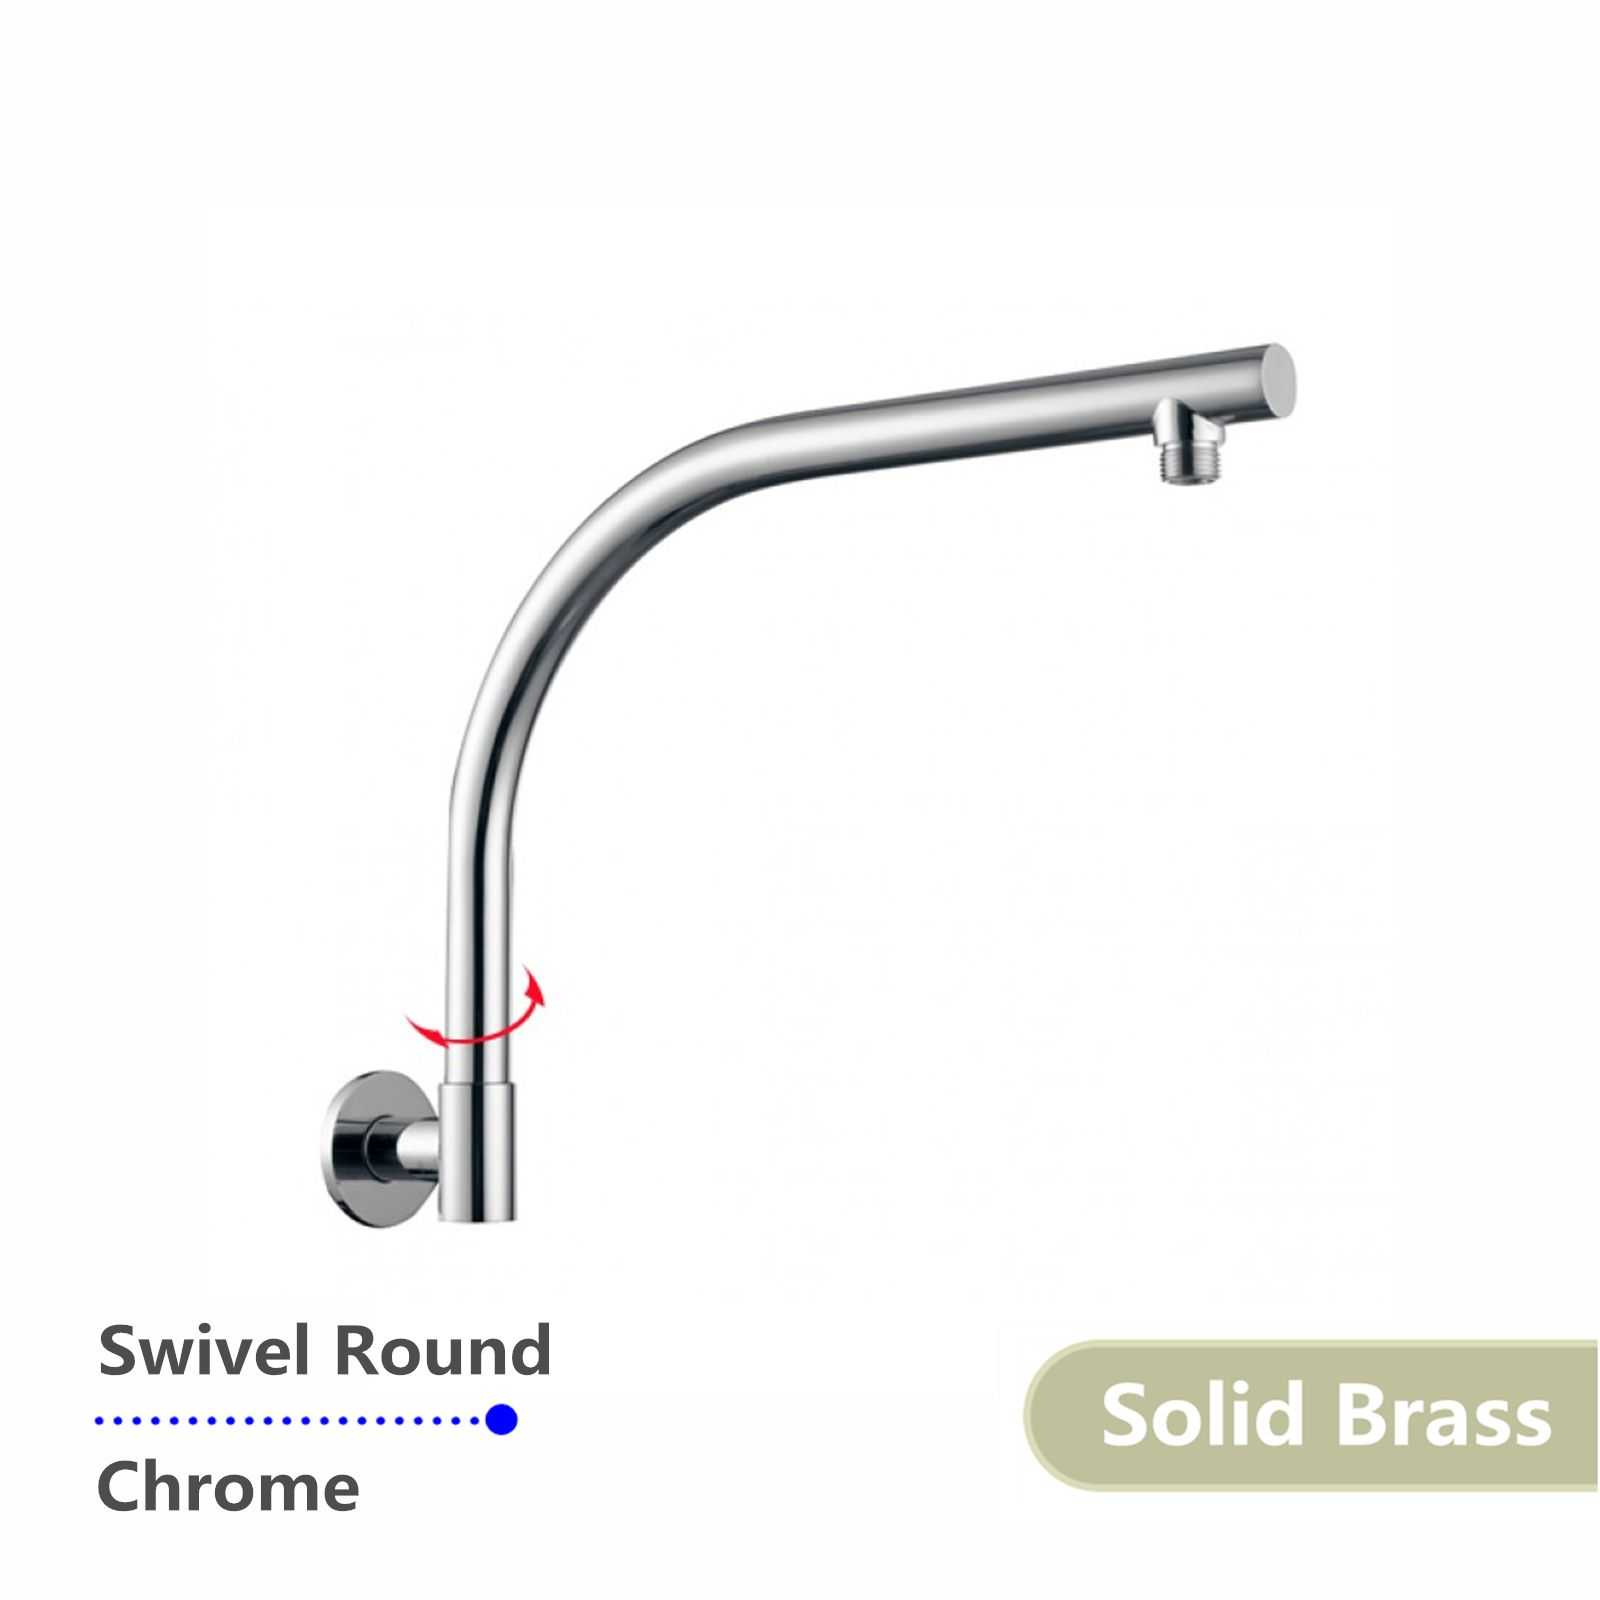 Round Chrome Swivel Wall Mounted Shower Arm